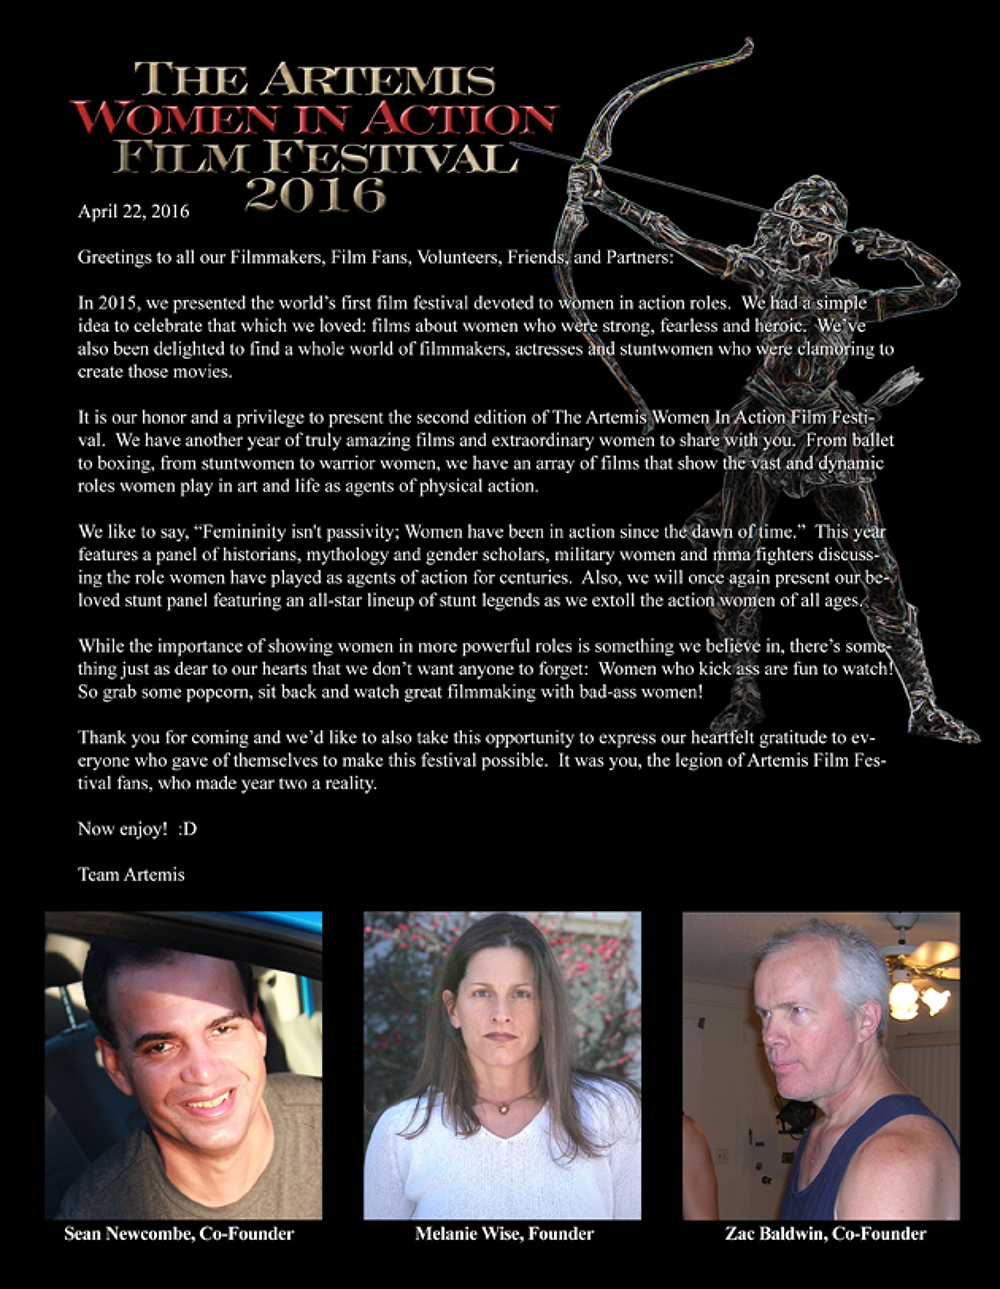 Artemis Women in Action Film Festival 2016 Program page 3